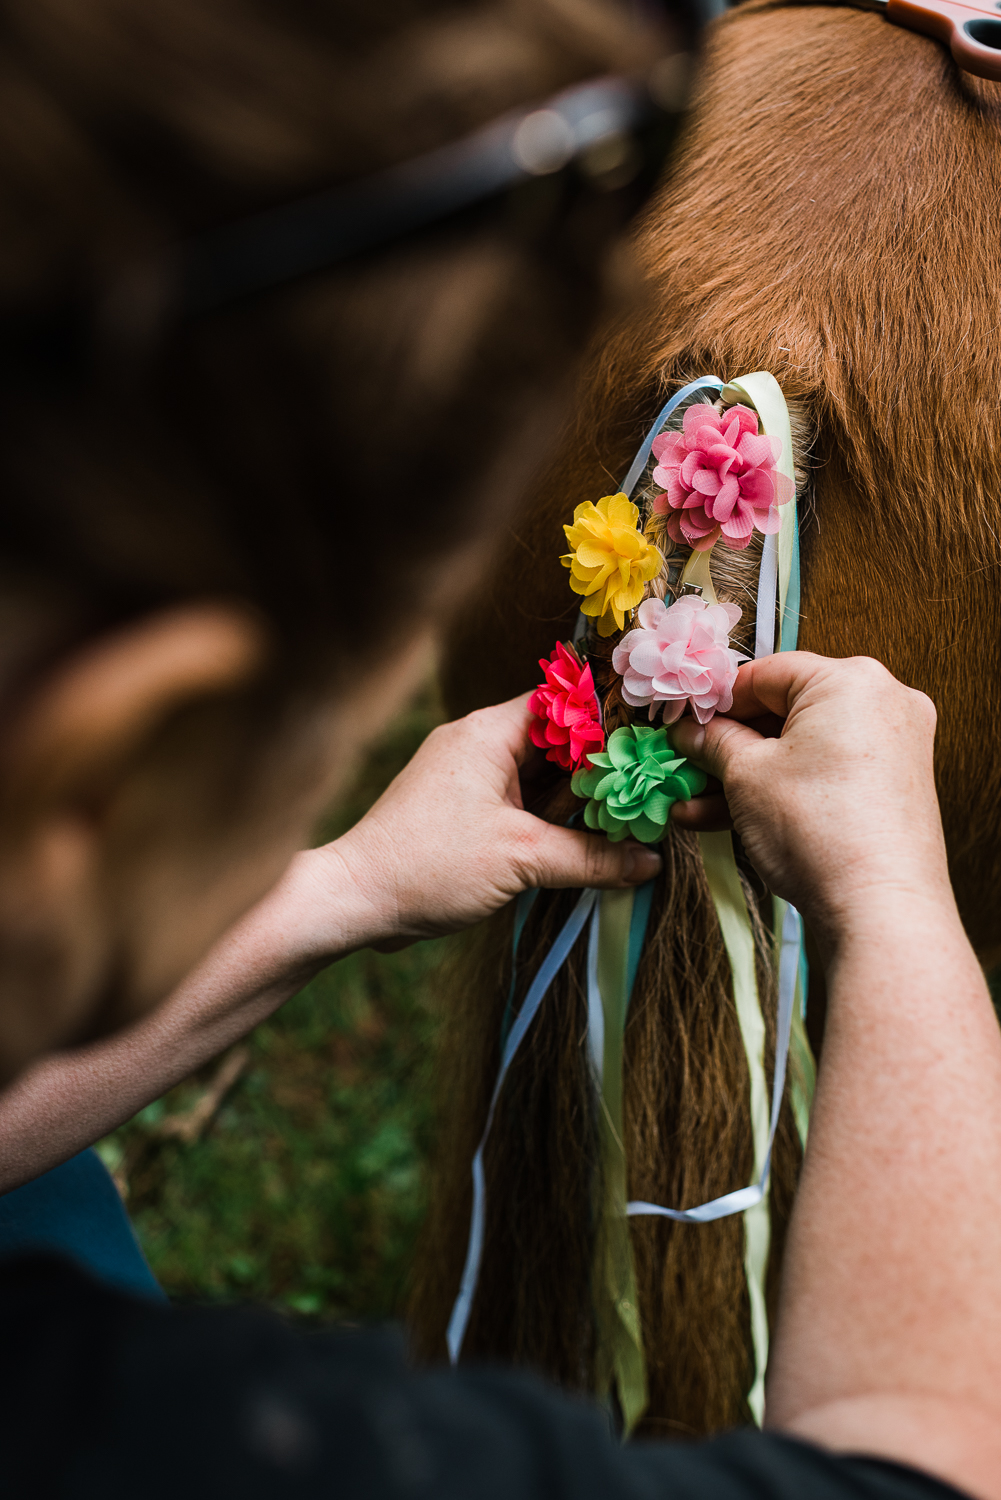 Flower braids on pony's tail